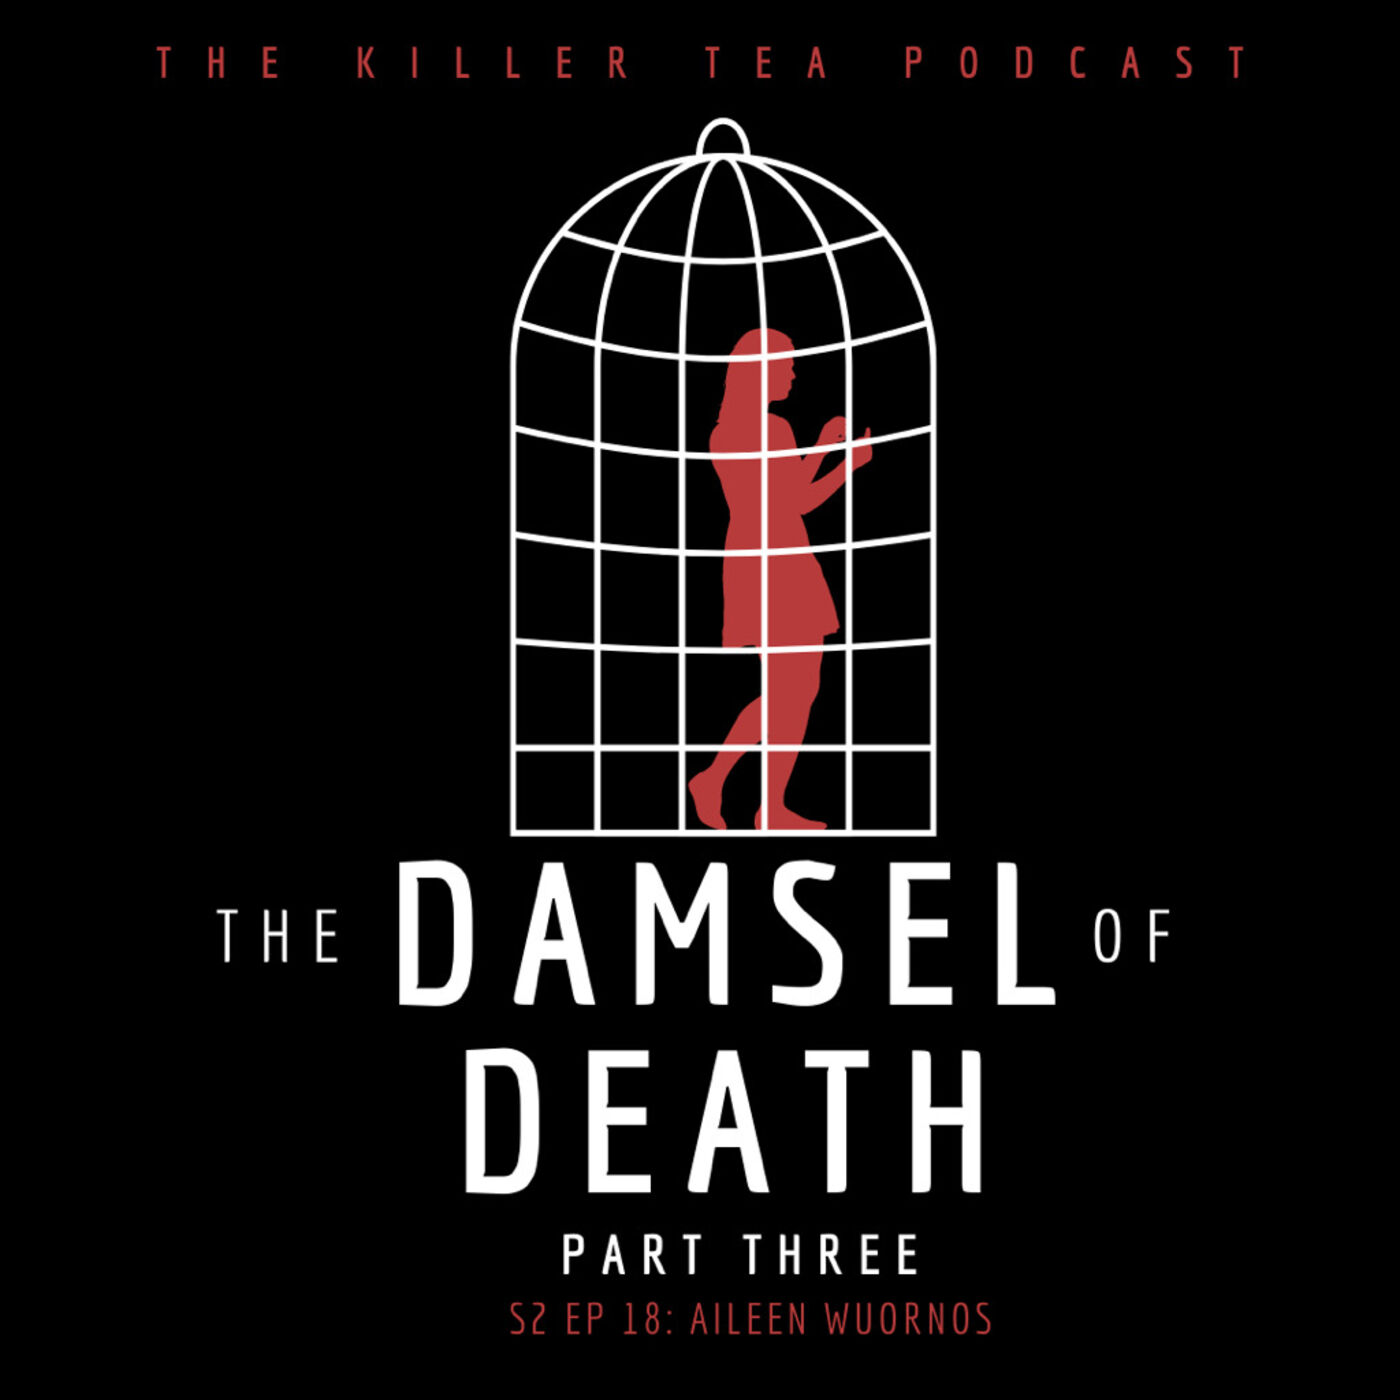 S2 Ep. 18 AILEEN WOURNOS    The Damsel of Death    Part 3